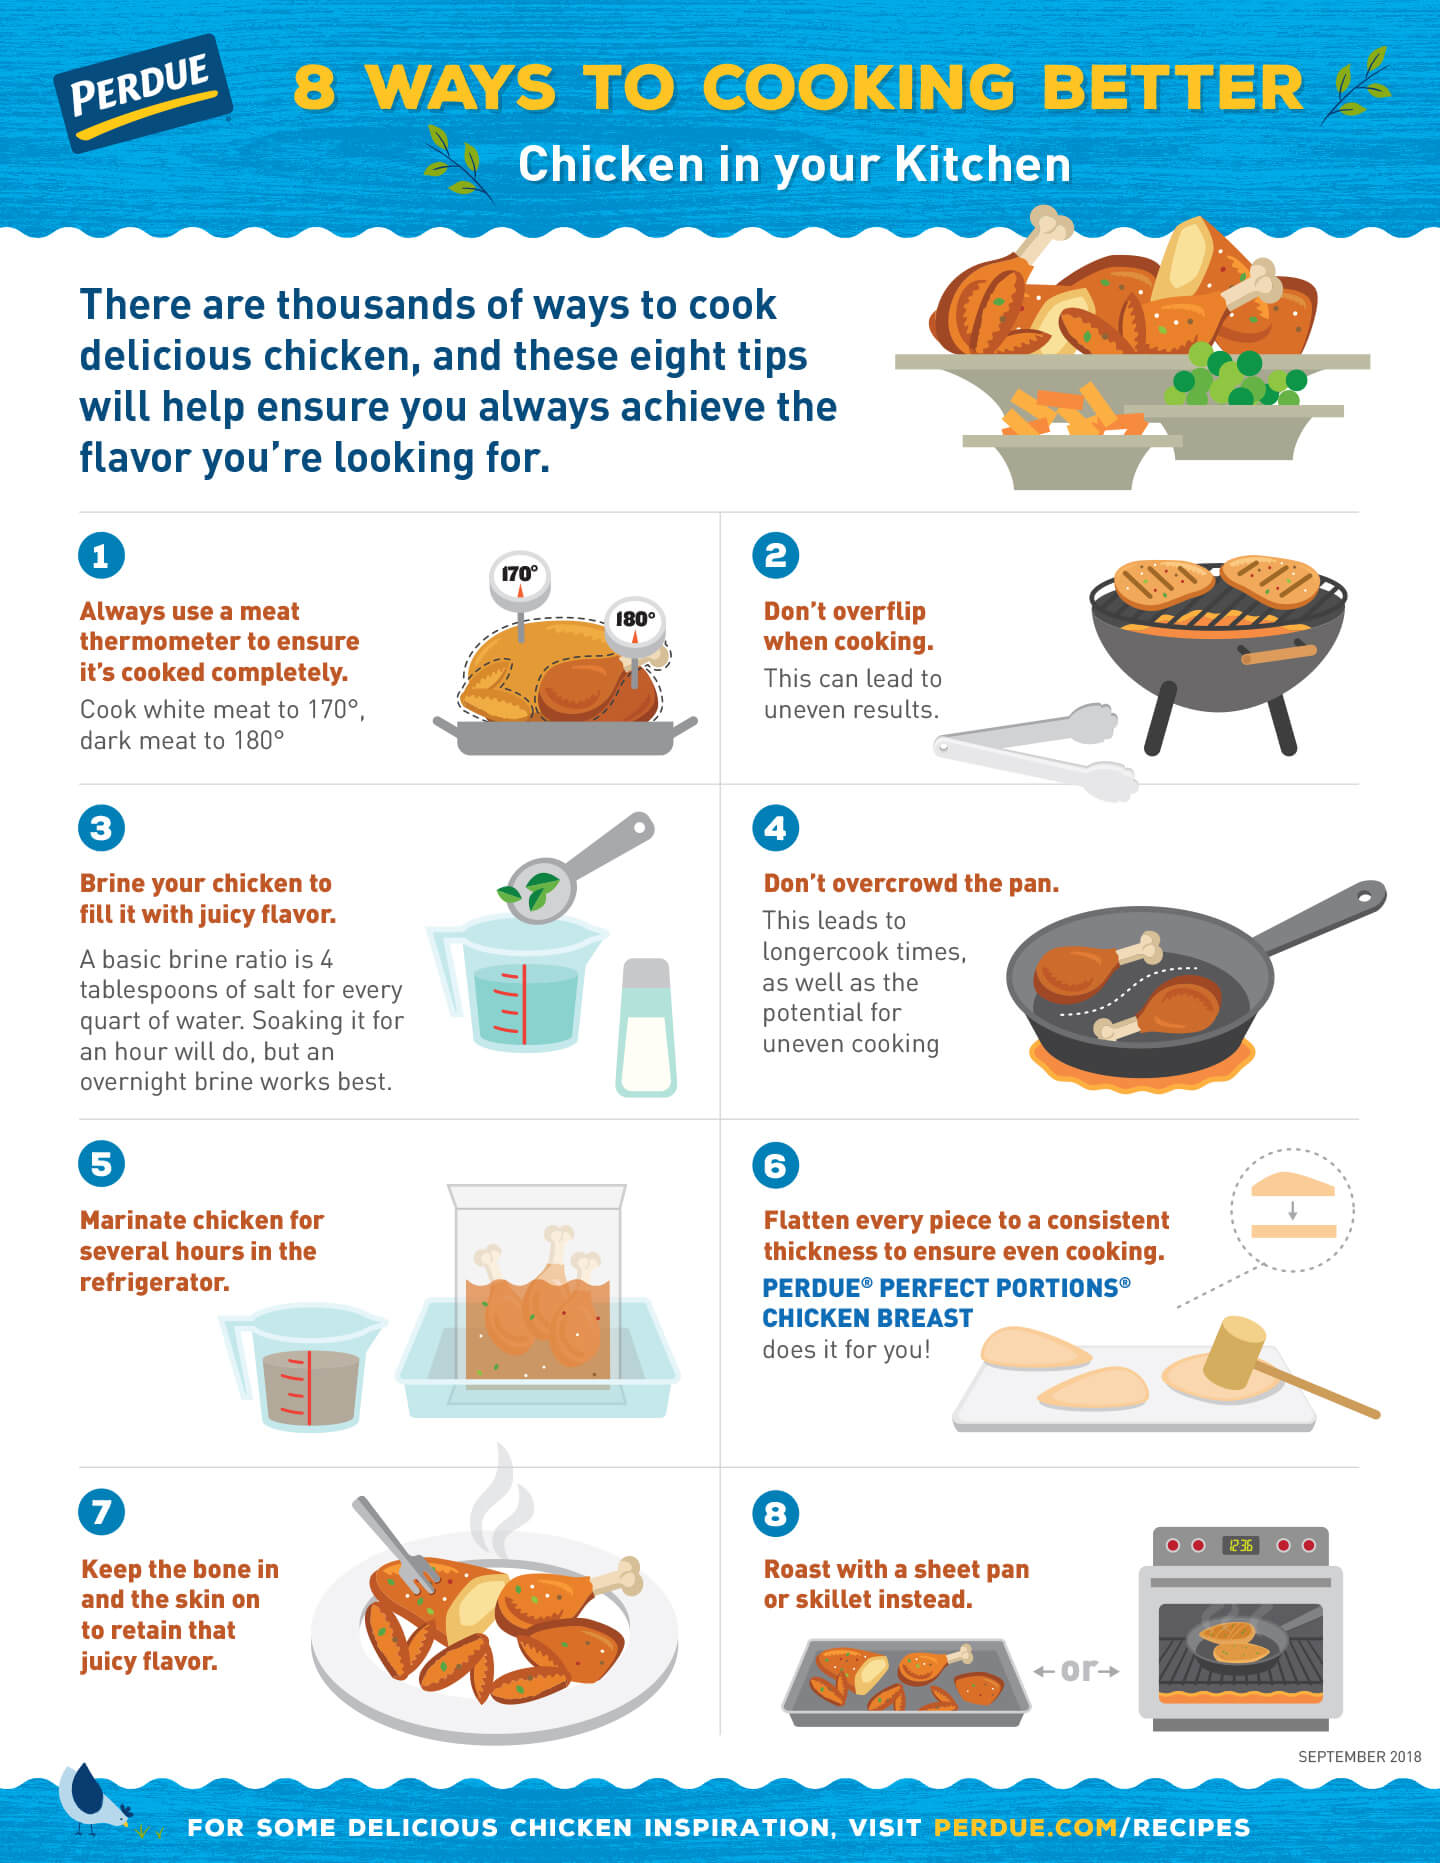 8 Ways to Cooking Better